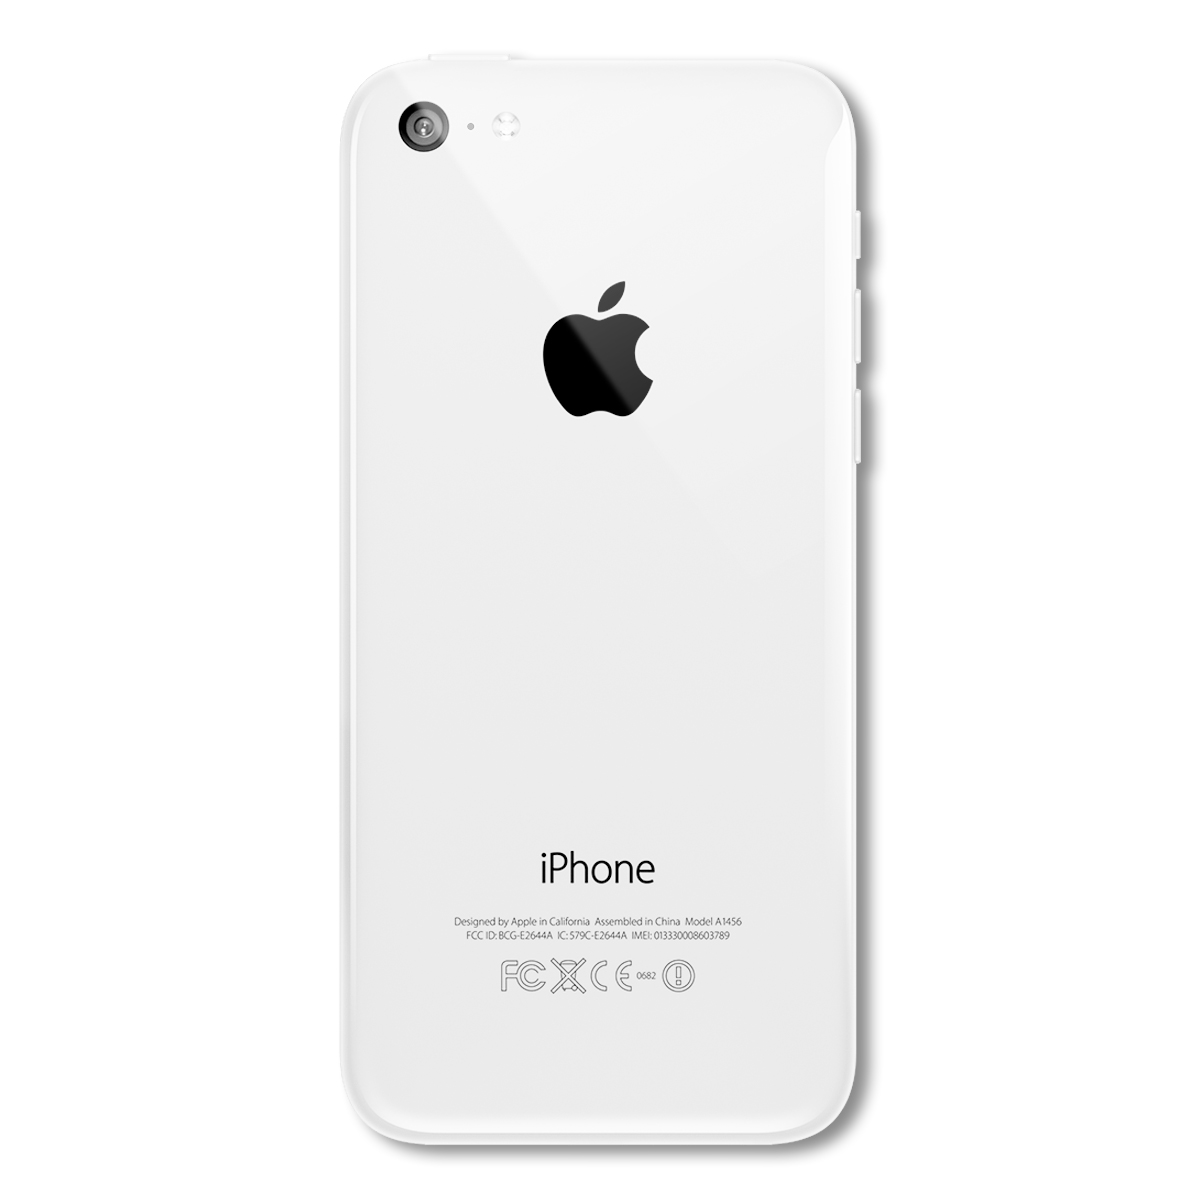 apple iphone model a1532 apple iphone 5c 32gb gsm unlocked smartphone a1532 at amp t t 8237